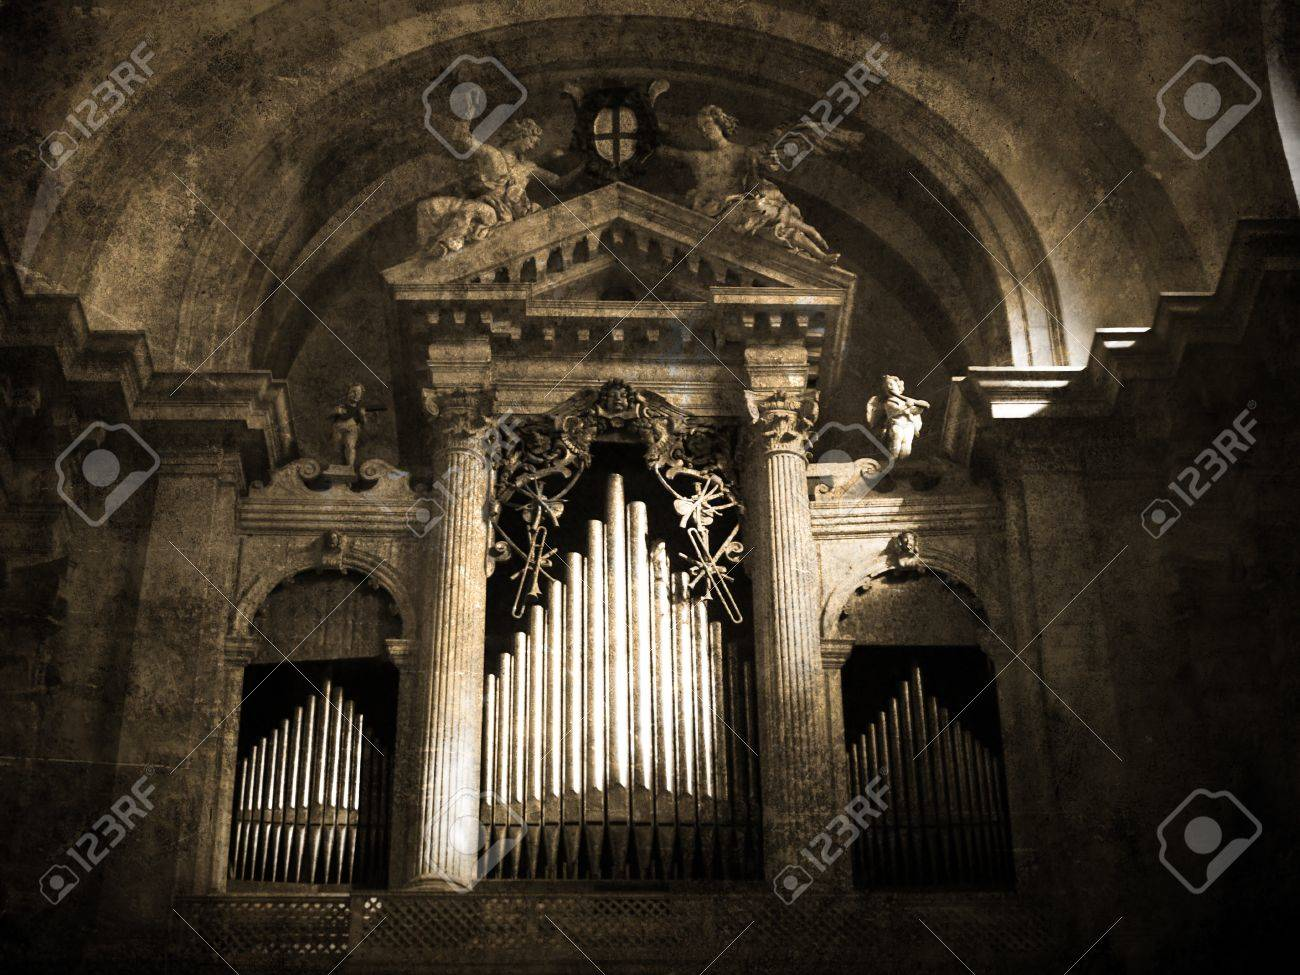 Old organ. Vintage picture          Stock Photo - 11771270